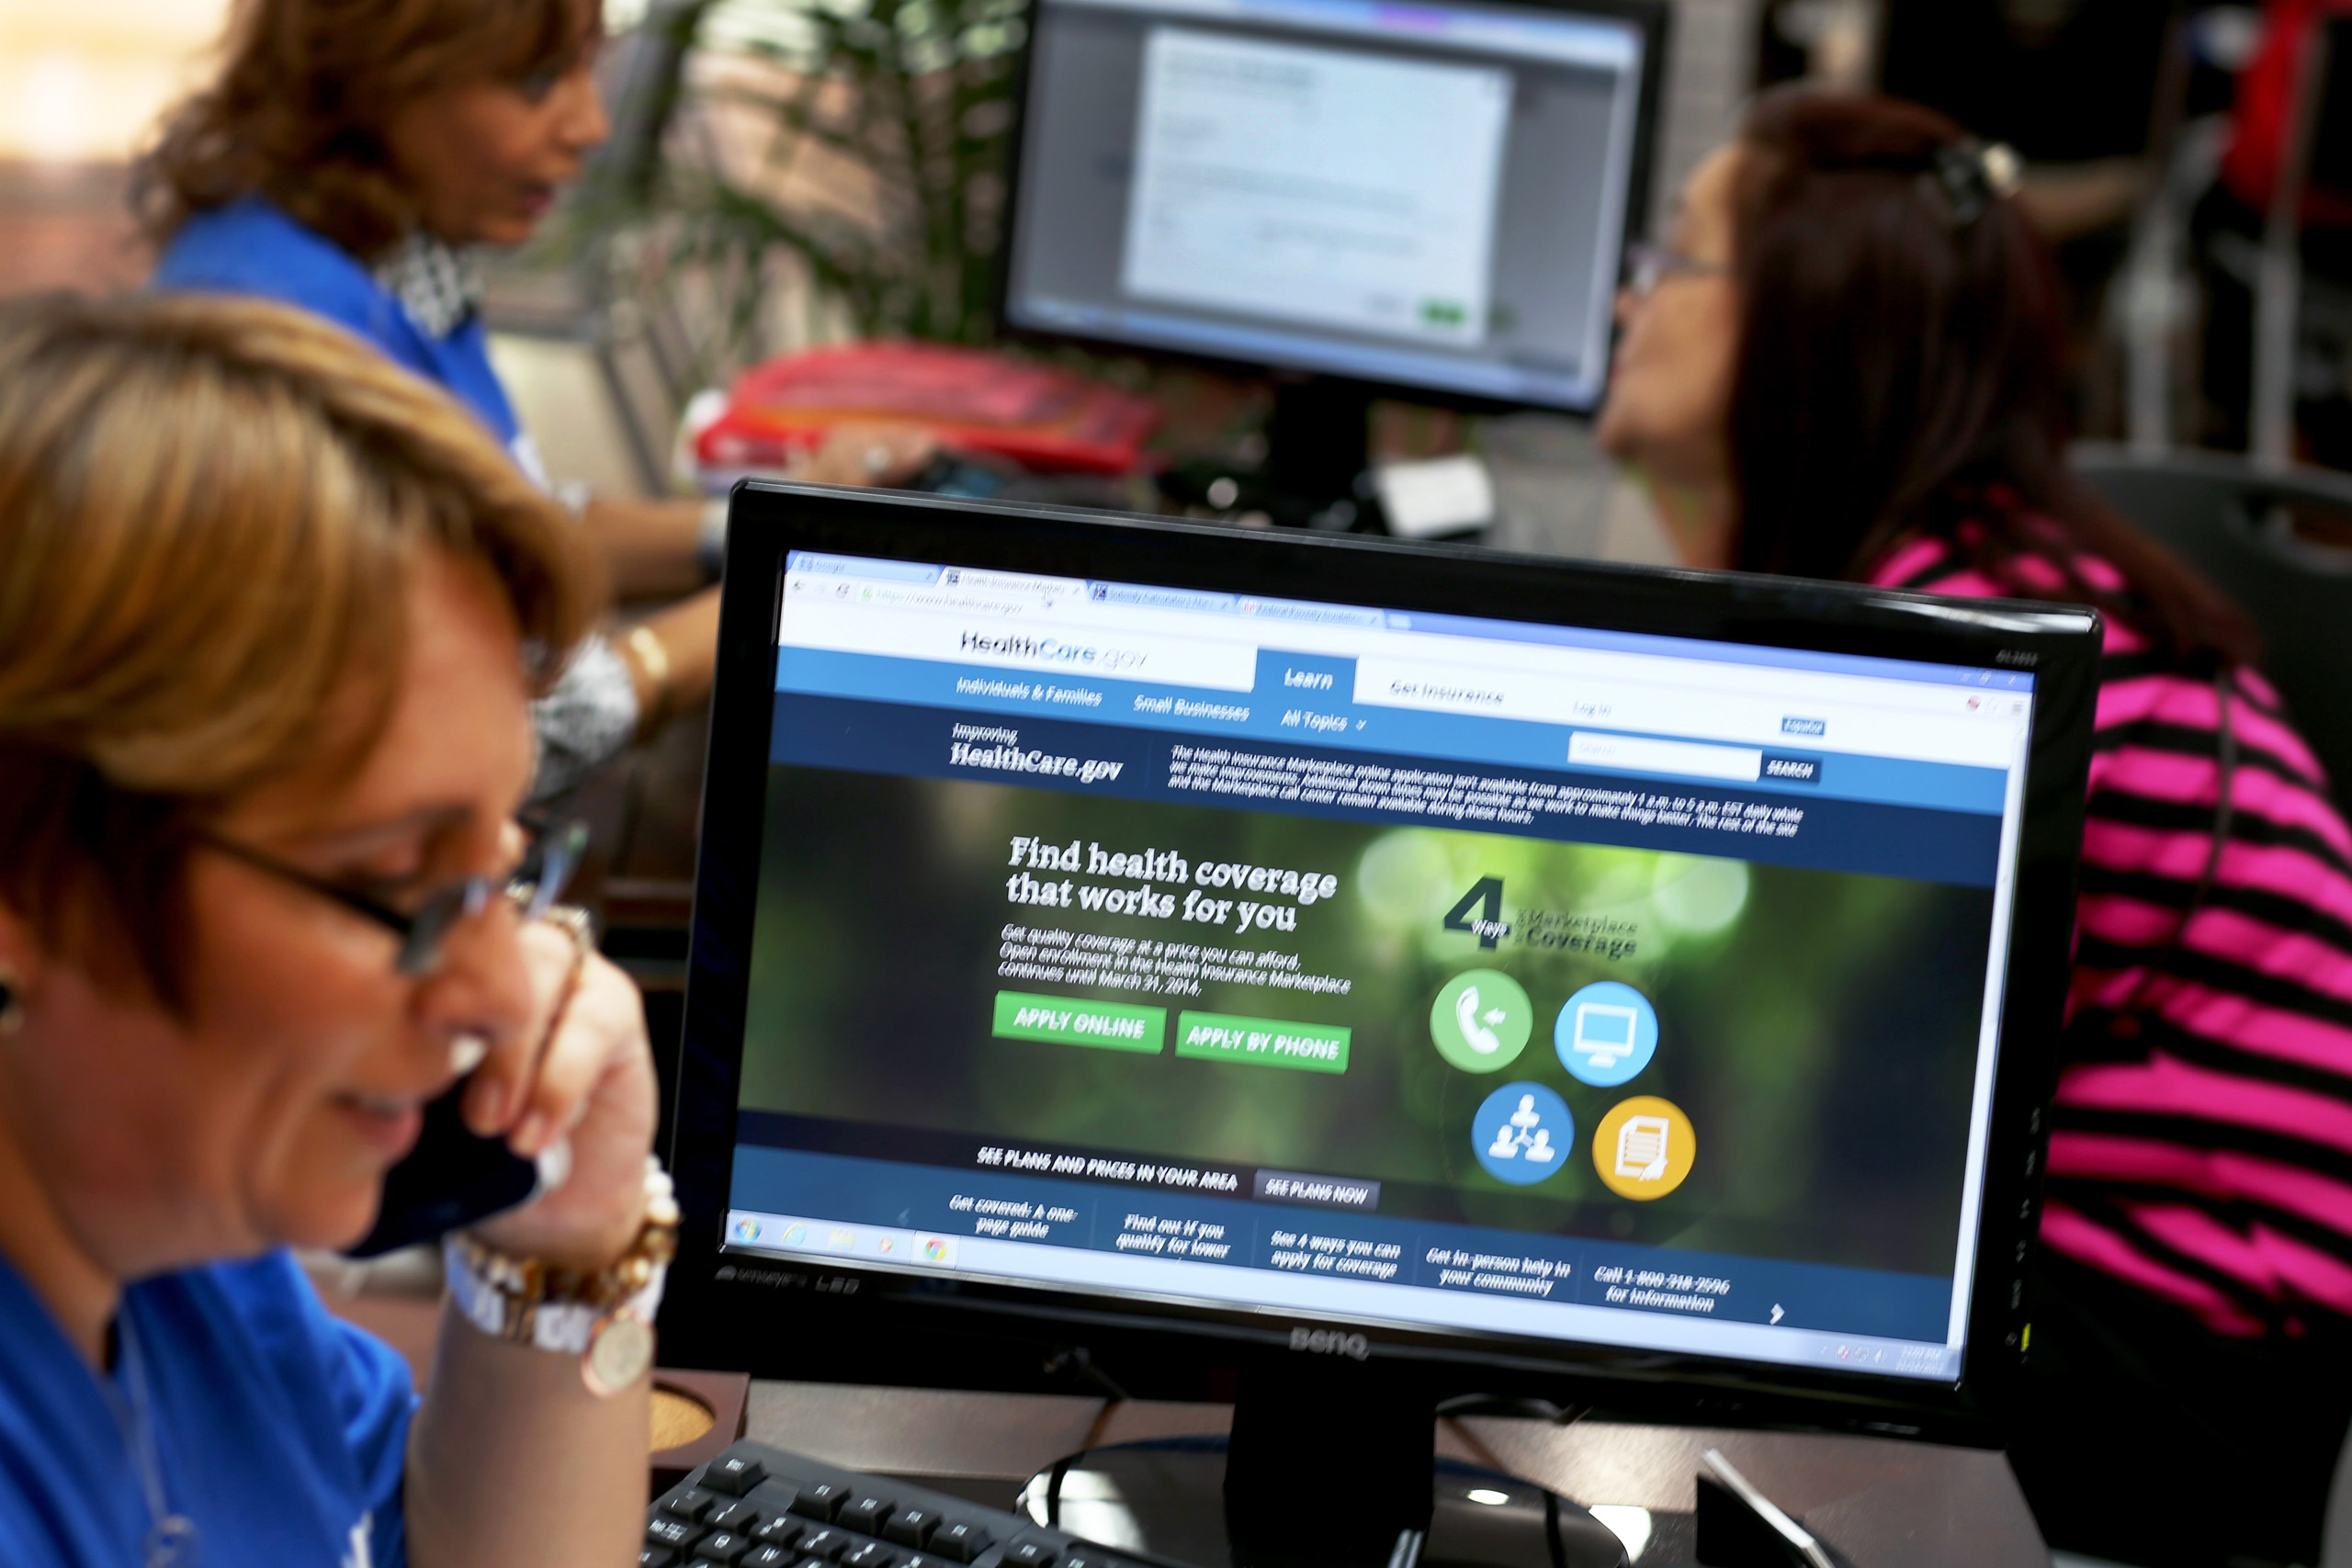 On Nov. 1, uninsured Americans will be able to enroll in Obamacare for 2017